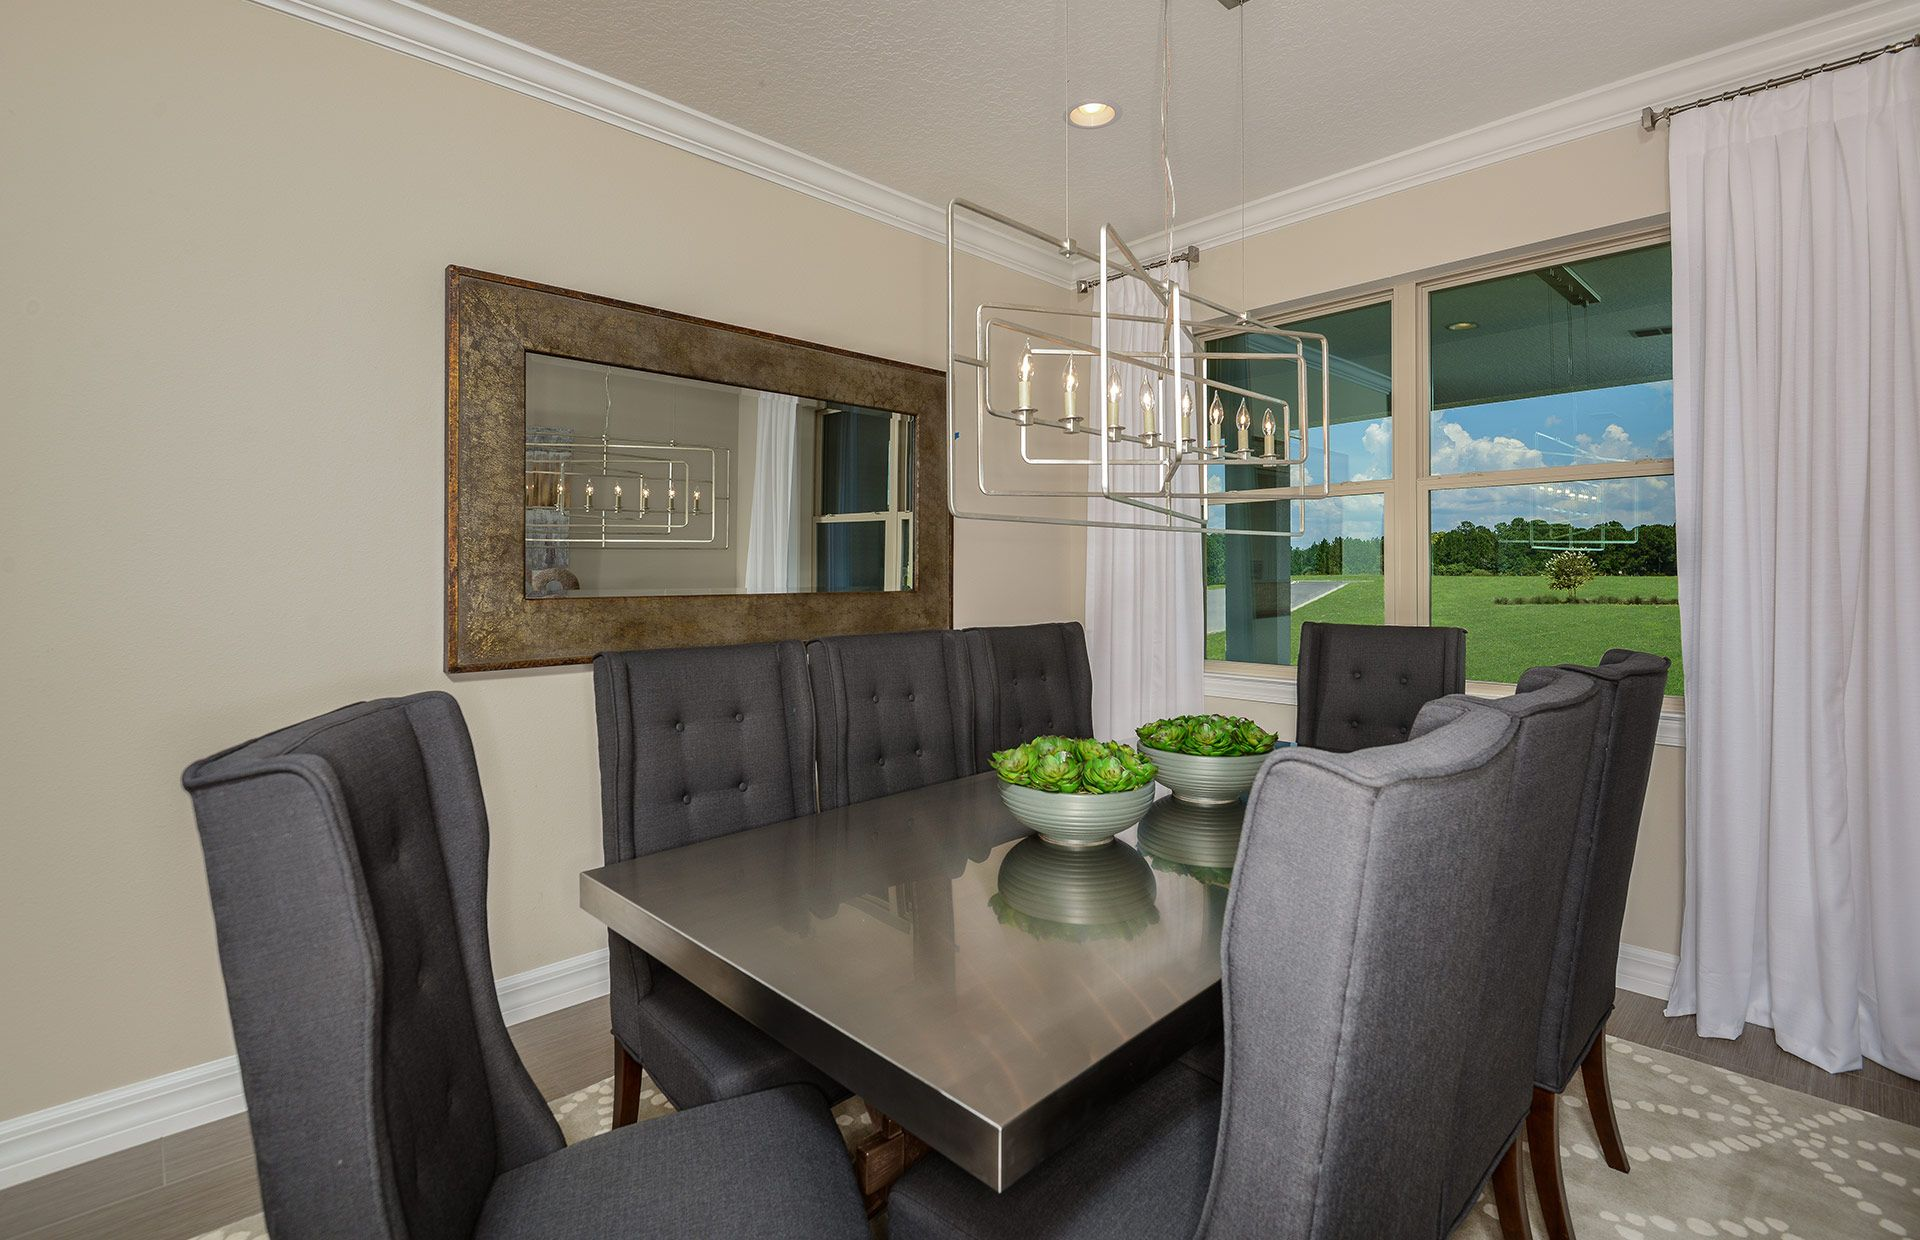 A Large Wall Mirror Will Visually Expand The Space In Your Dining Room. |  Pulte